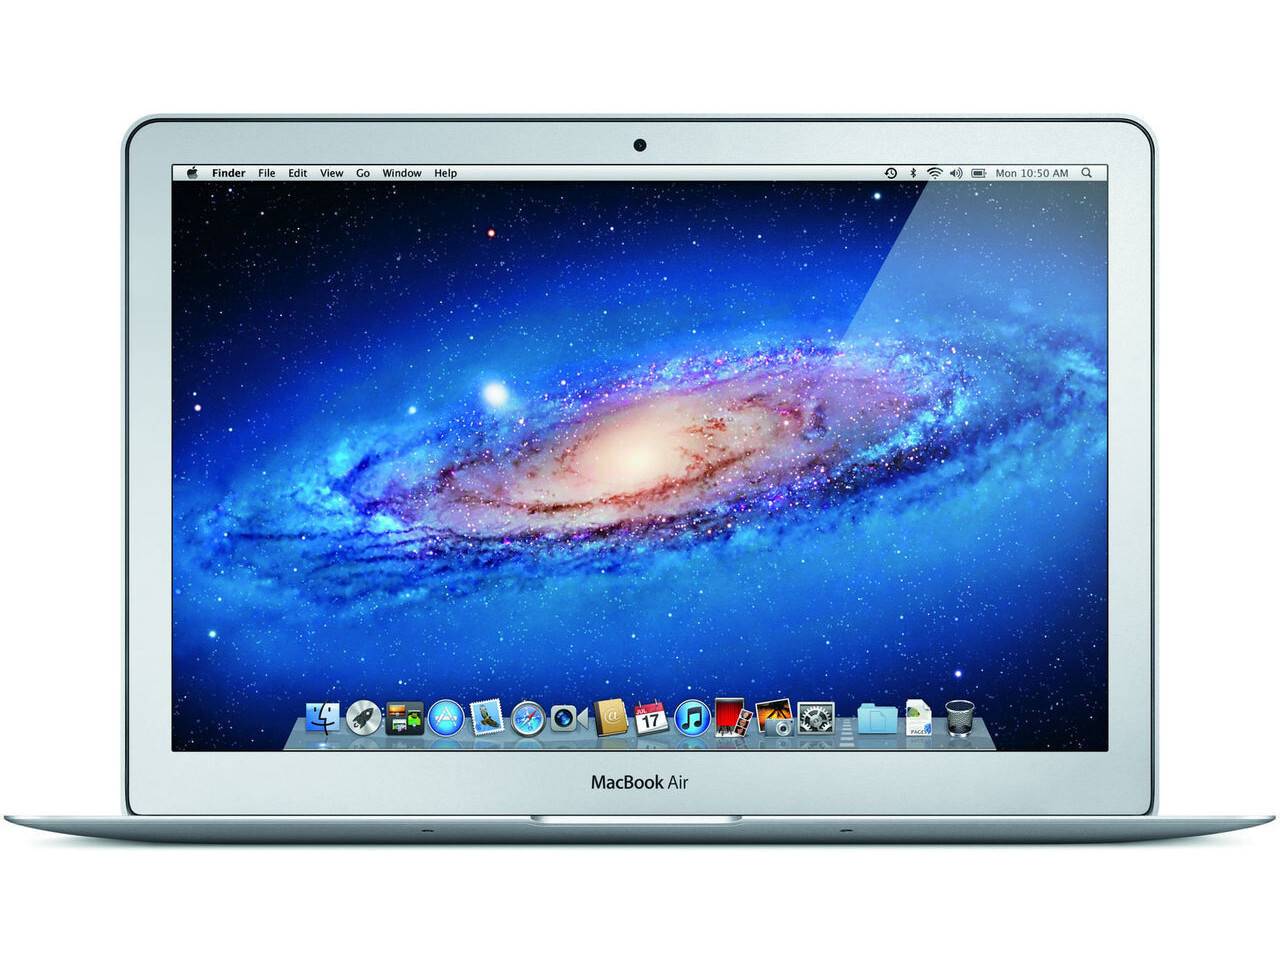 macbook air 13 inch 2012 silver